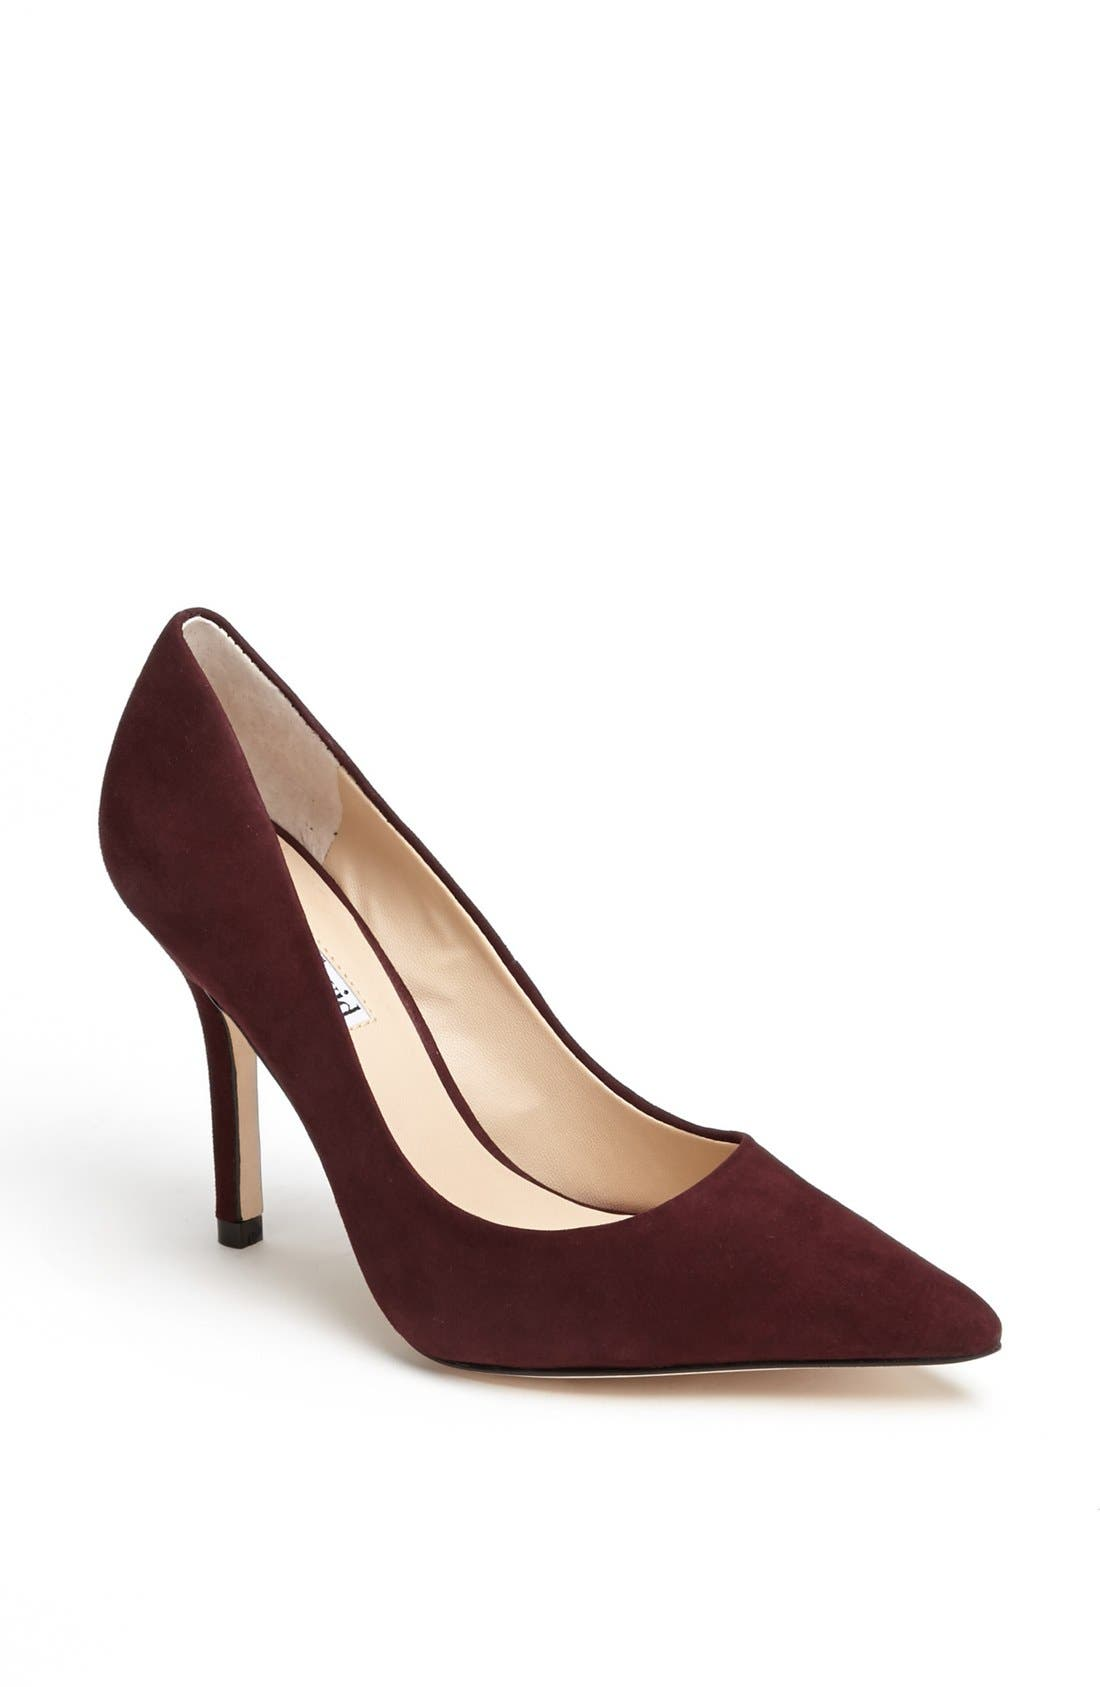 Alternate Image 1 Selected - Charles David 'Sway II' Suede Pump